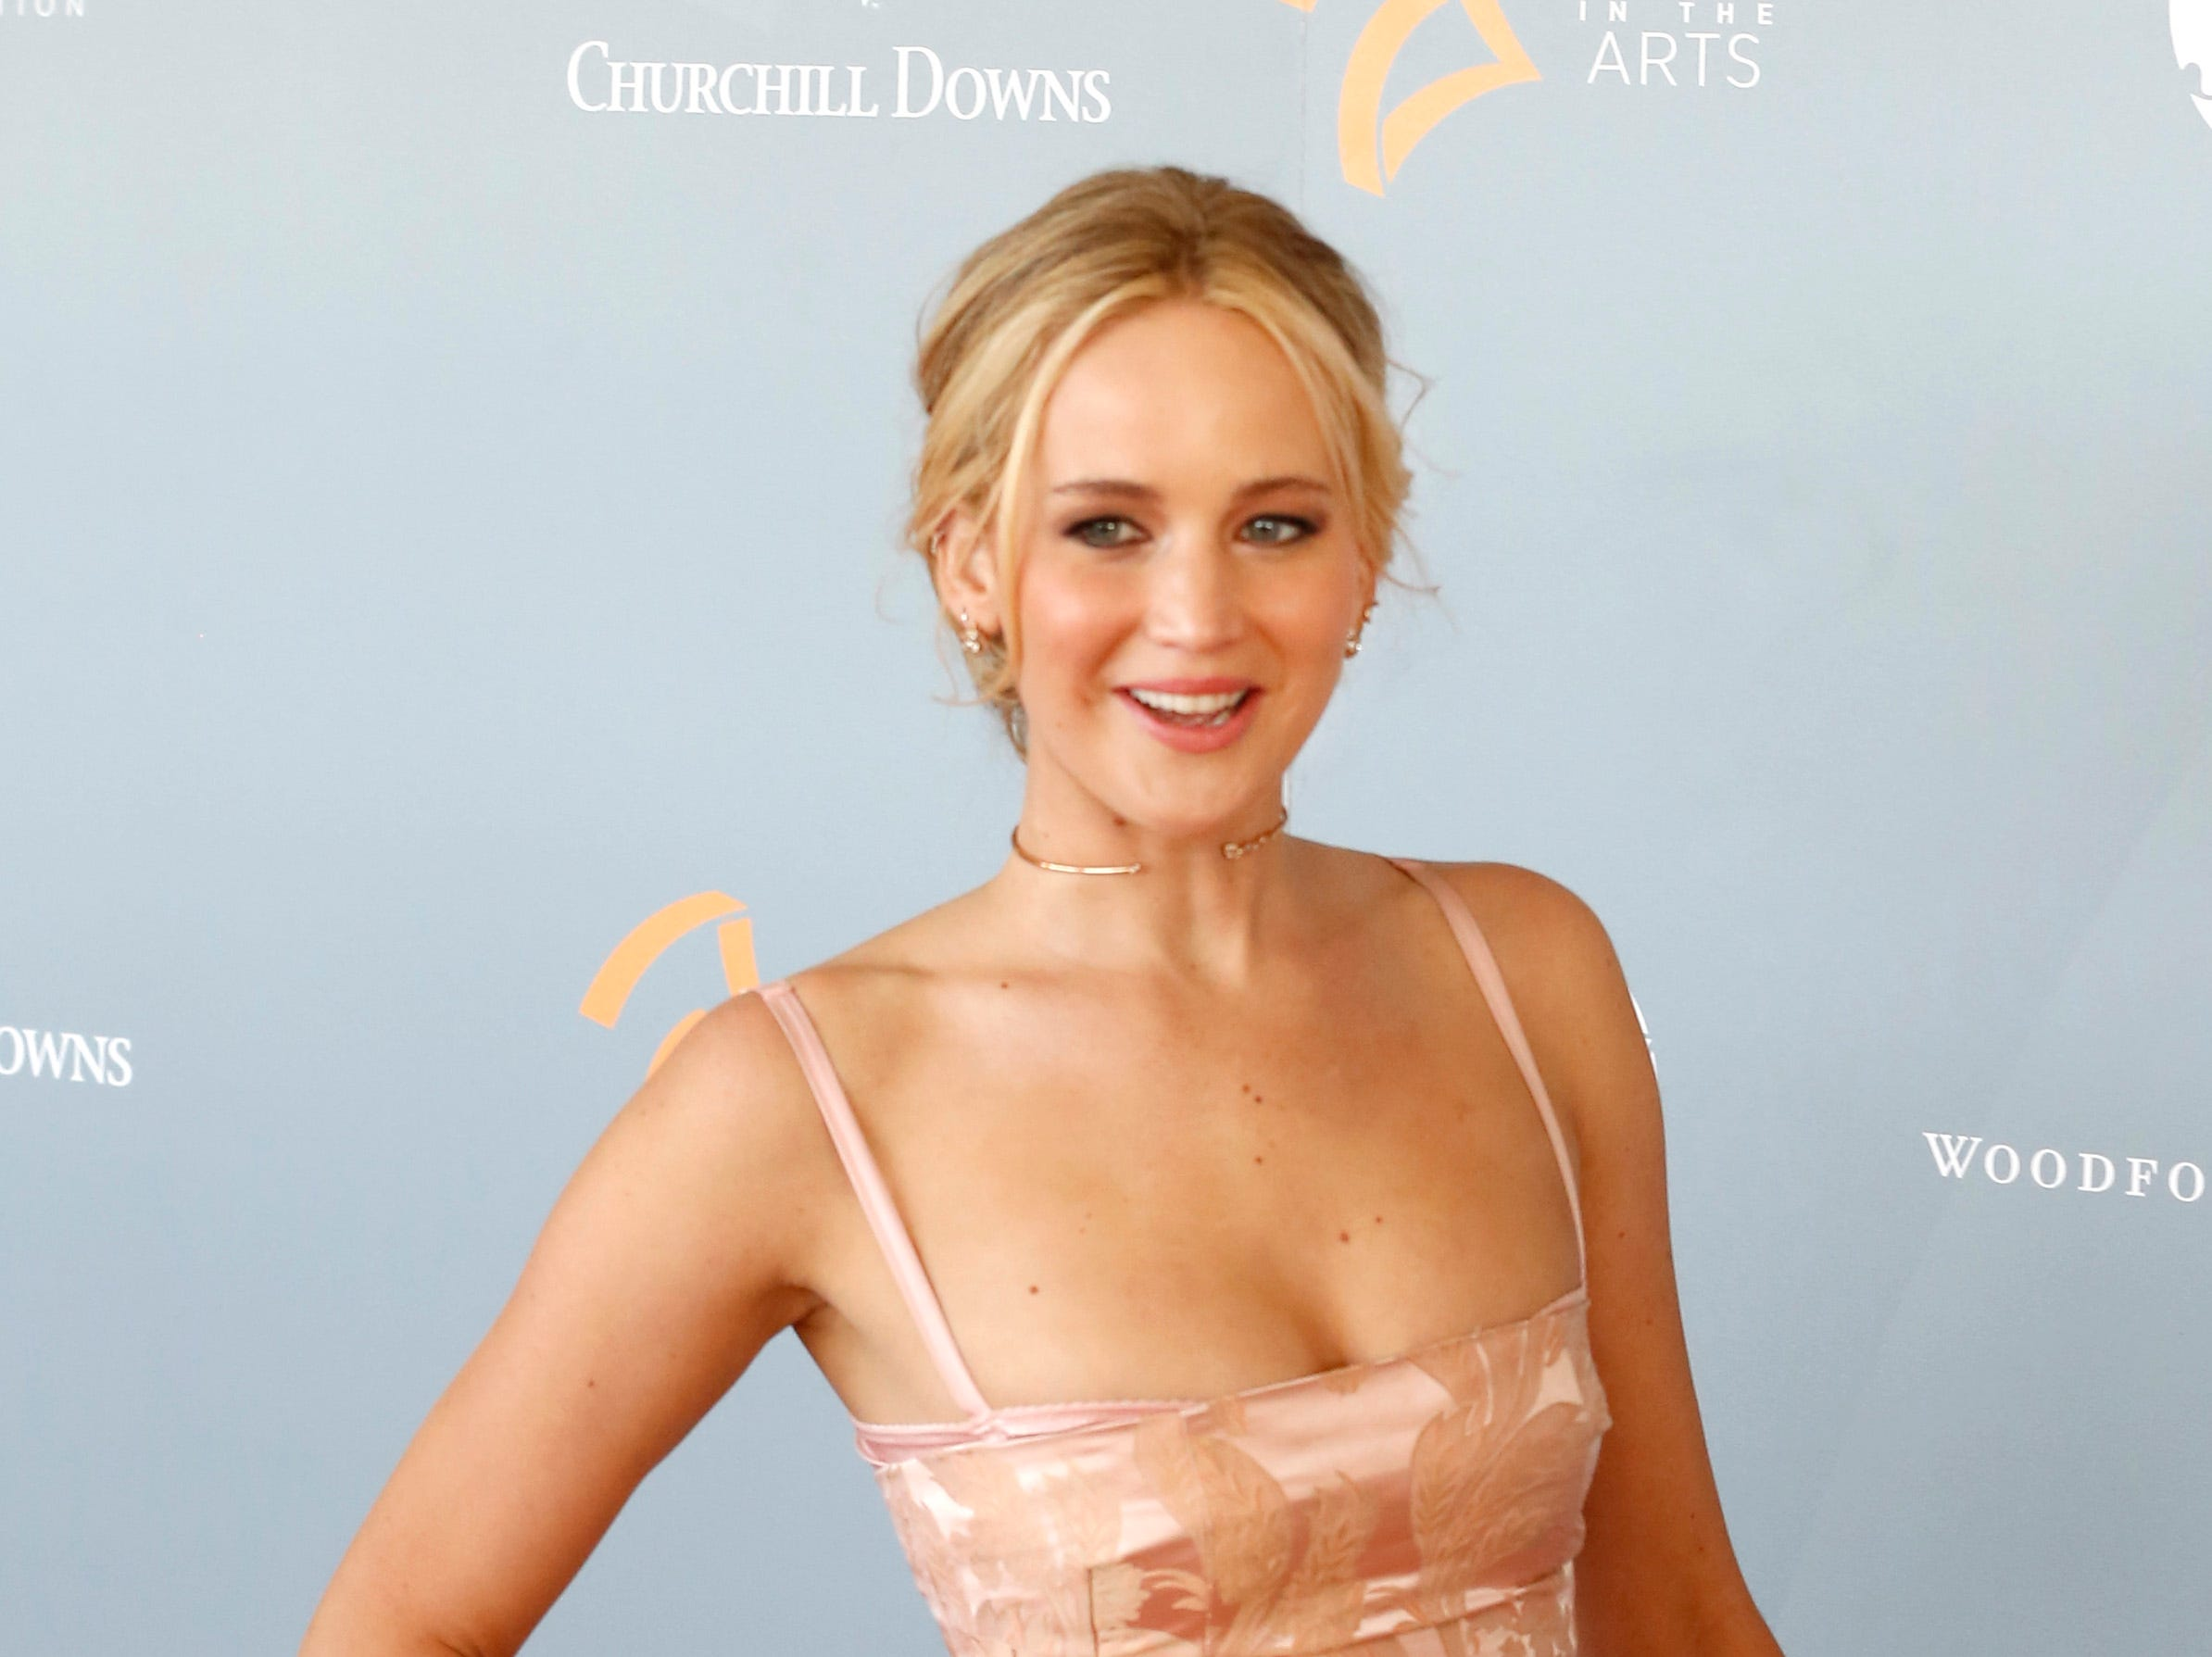 Apr 27, 2018; Louisville, KY, USA; Jennifer Lawrence walks the 'orange carpet' at the 3rd annual Awards in the Arts Ceremony at Churchill Downs in Louisville, Kentucky. Mandatory Credit: Scott Utterback/Courier Journal via USA TODAY NETWORK ORIG FILE ID:  20180429_jel_usa_644.jpg